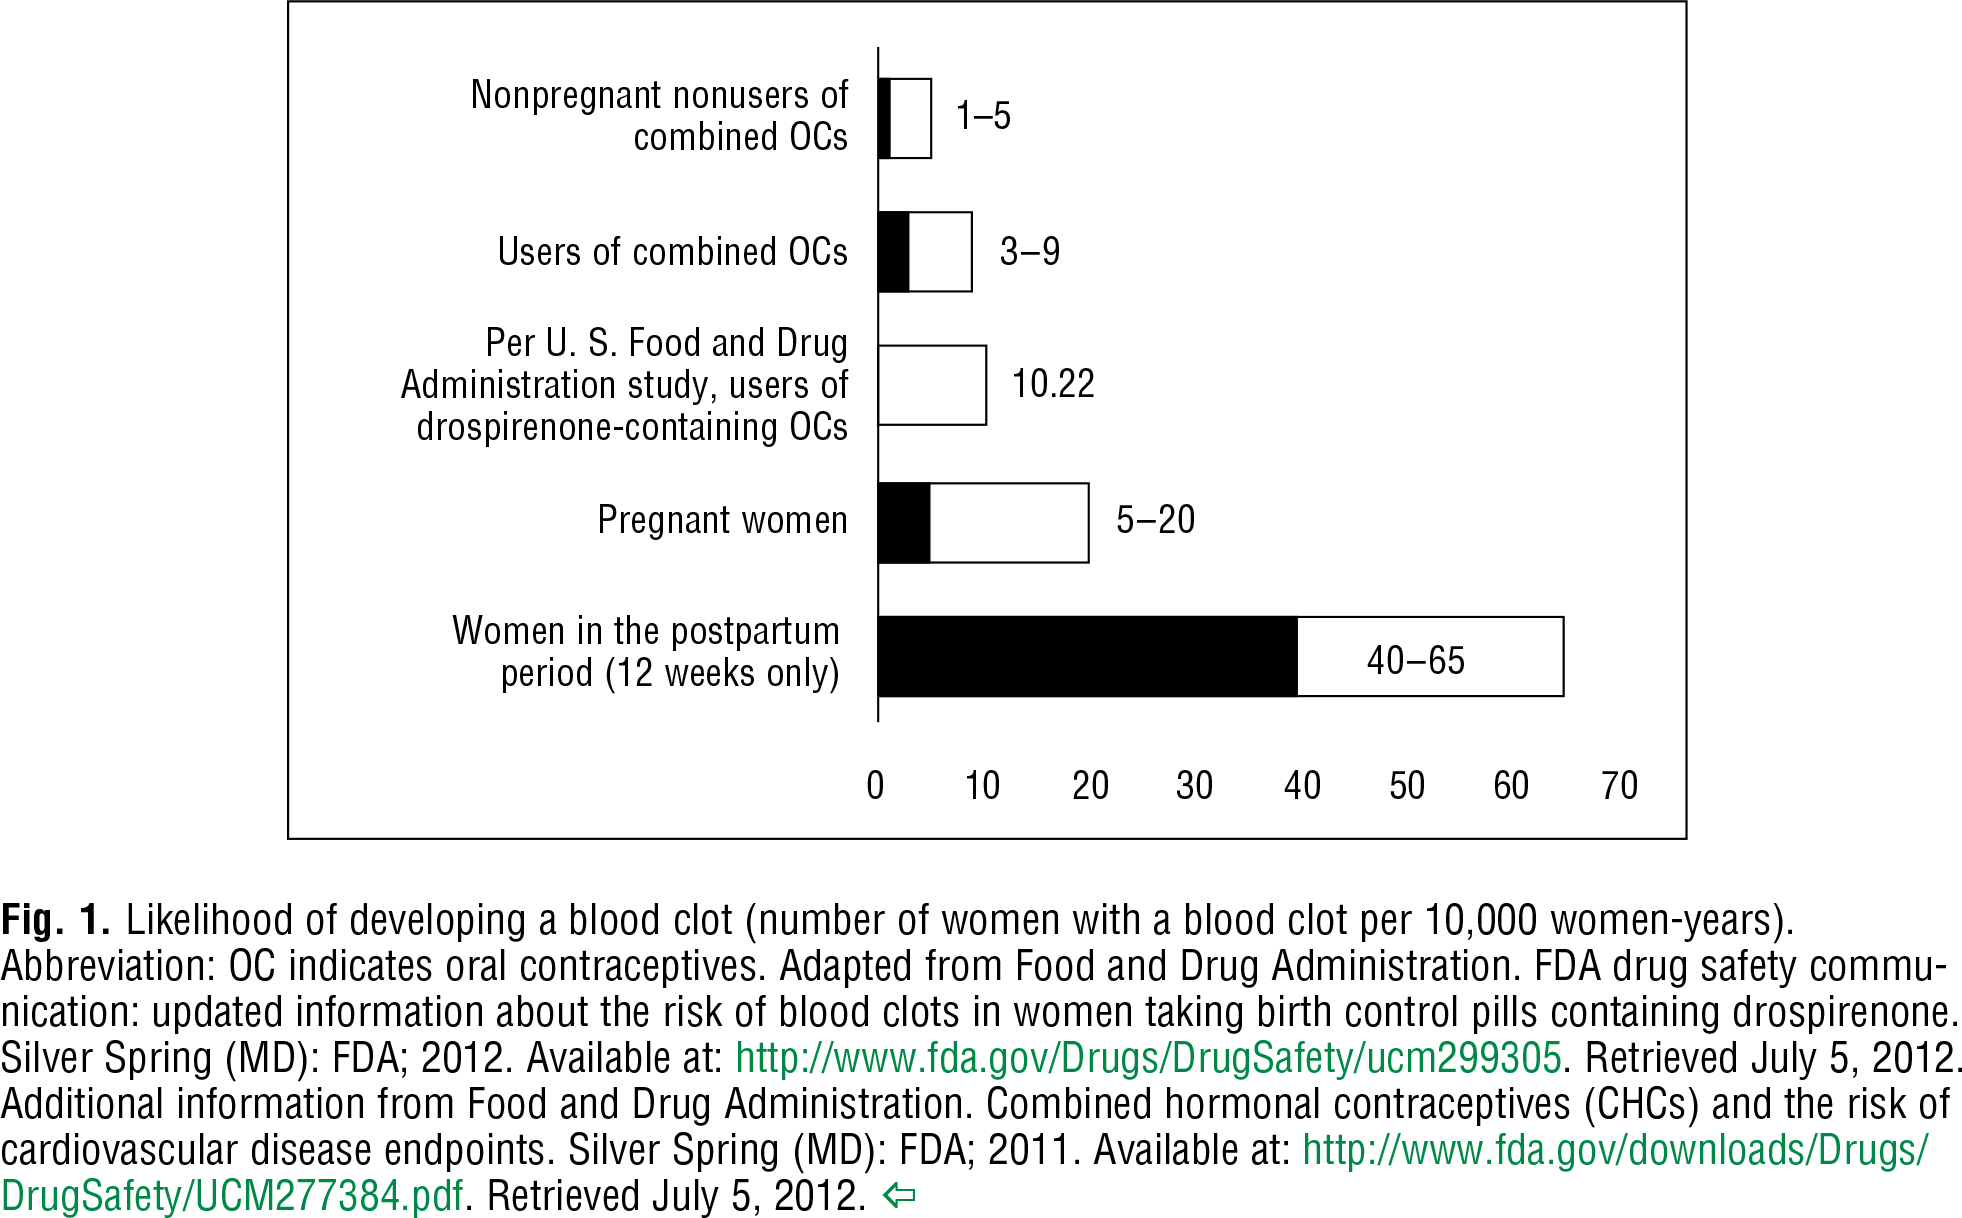 Risk of Venous Thromboembolism Among Users of Drospirenone-Containing Oral Contraceptive Pills